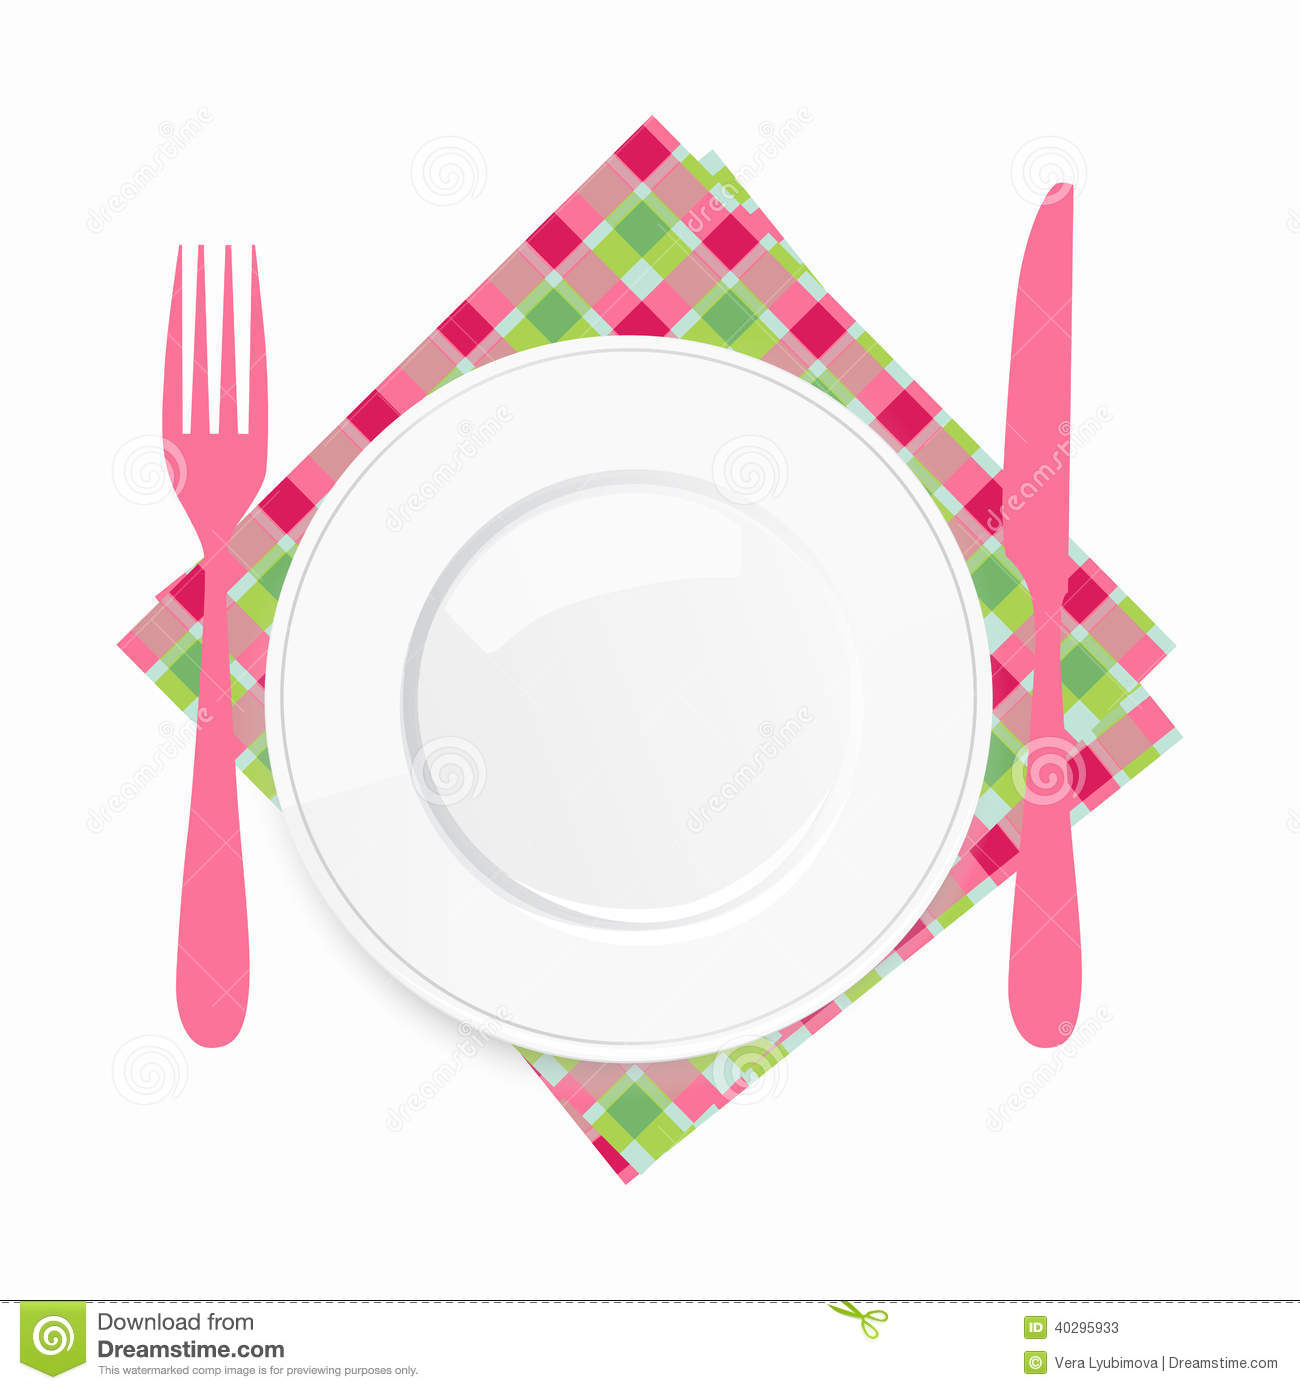 Empty white plate with. Catering clipart knife fork picture black and white download